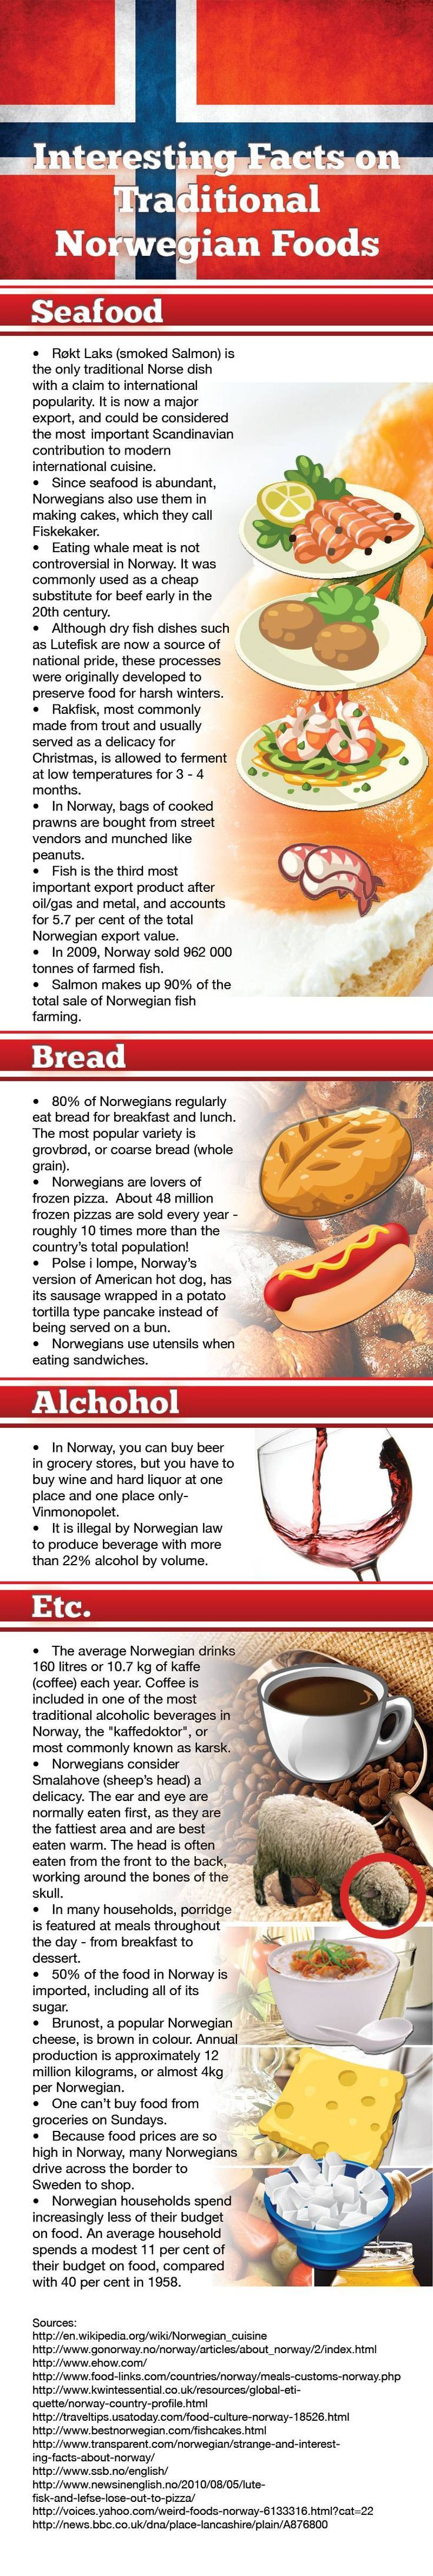 Norwegian food- As a Norwegian, it's funny reading information about Norwegian food written by a foreigner!